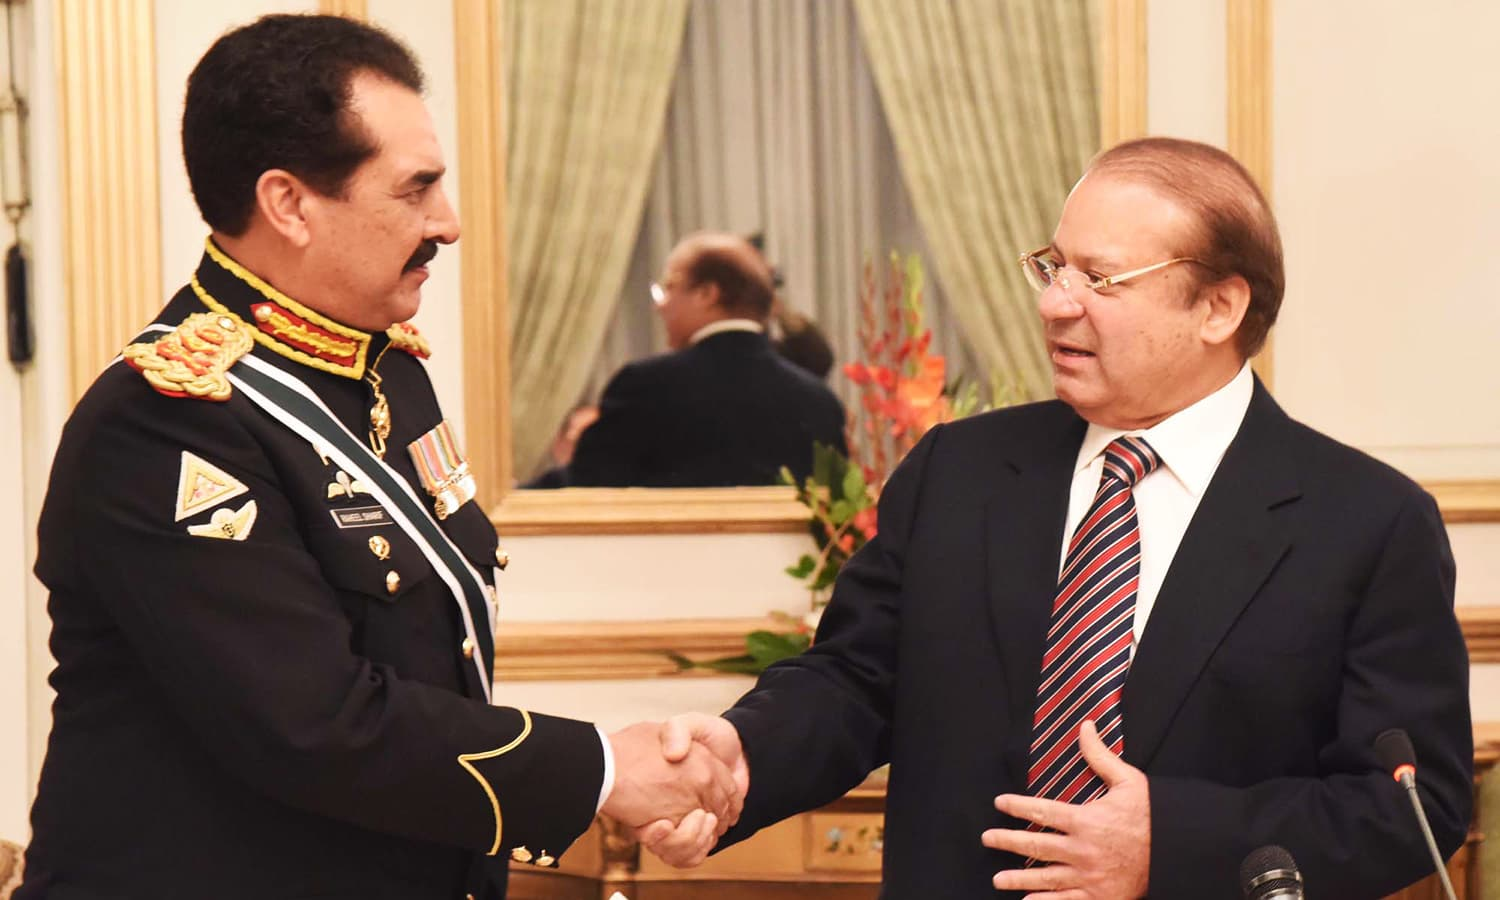 PM Nawaz shakes hands with outgoing Chief of Army Staff Gen Raheel Sharif. ─ PPI